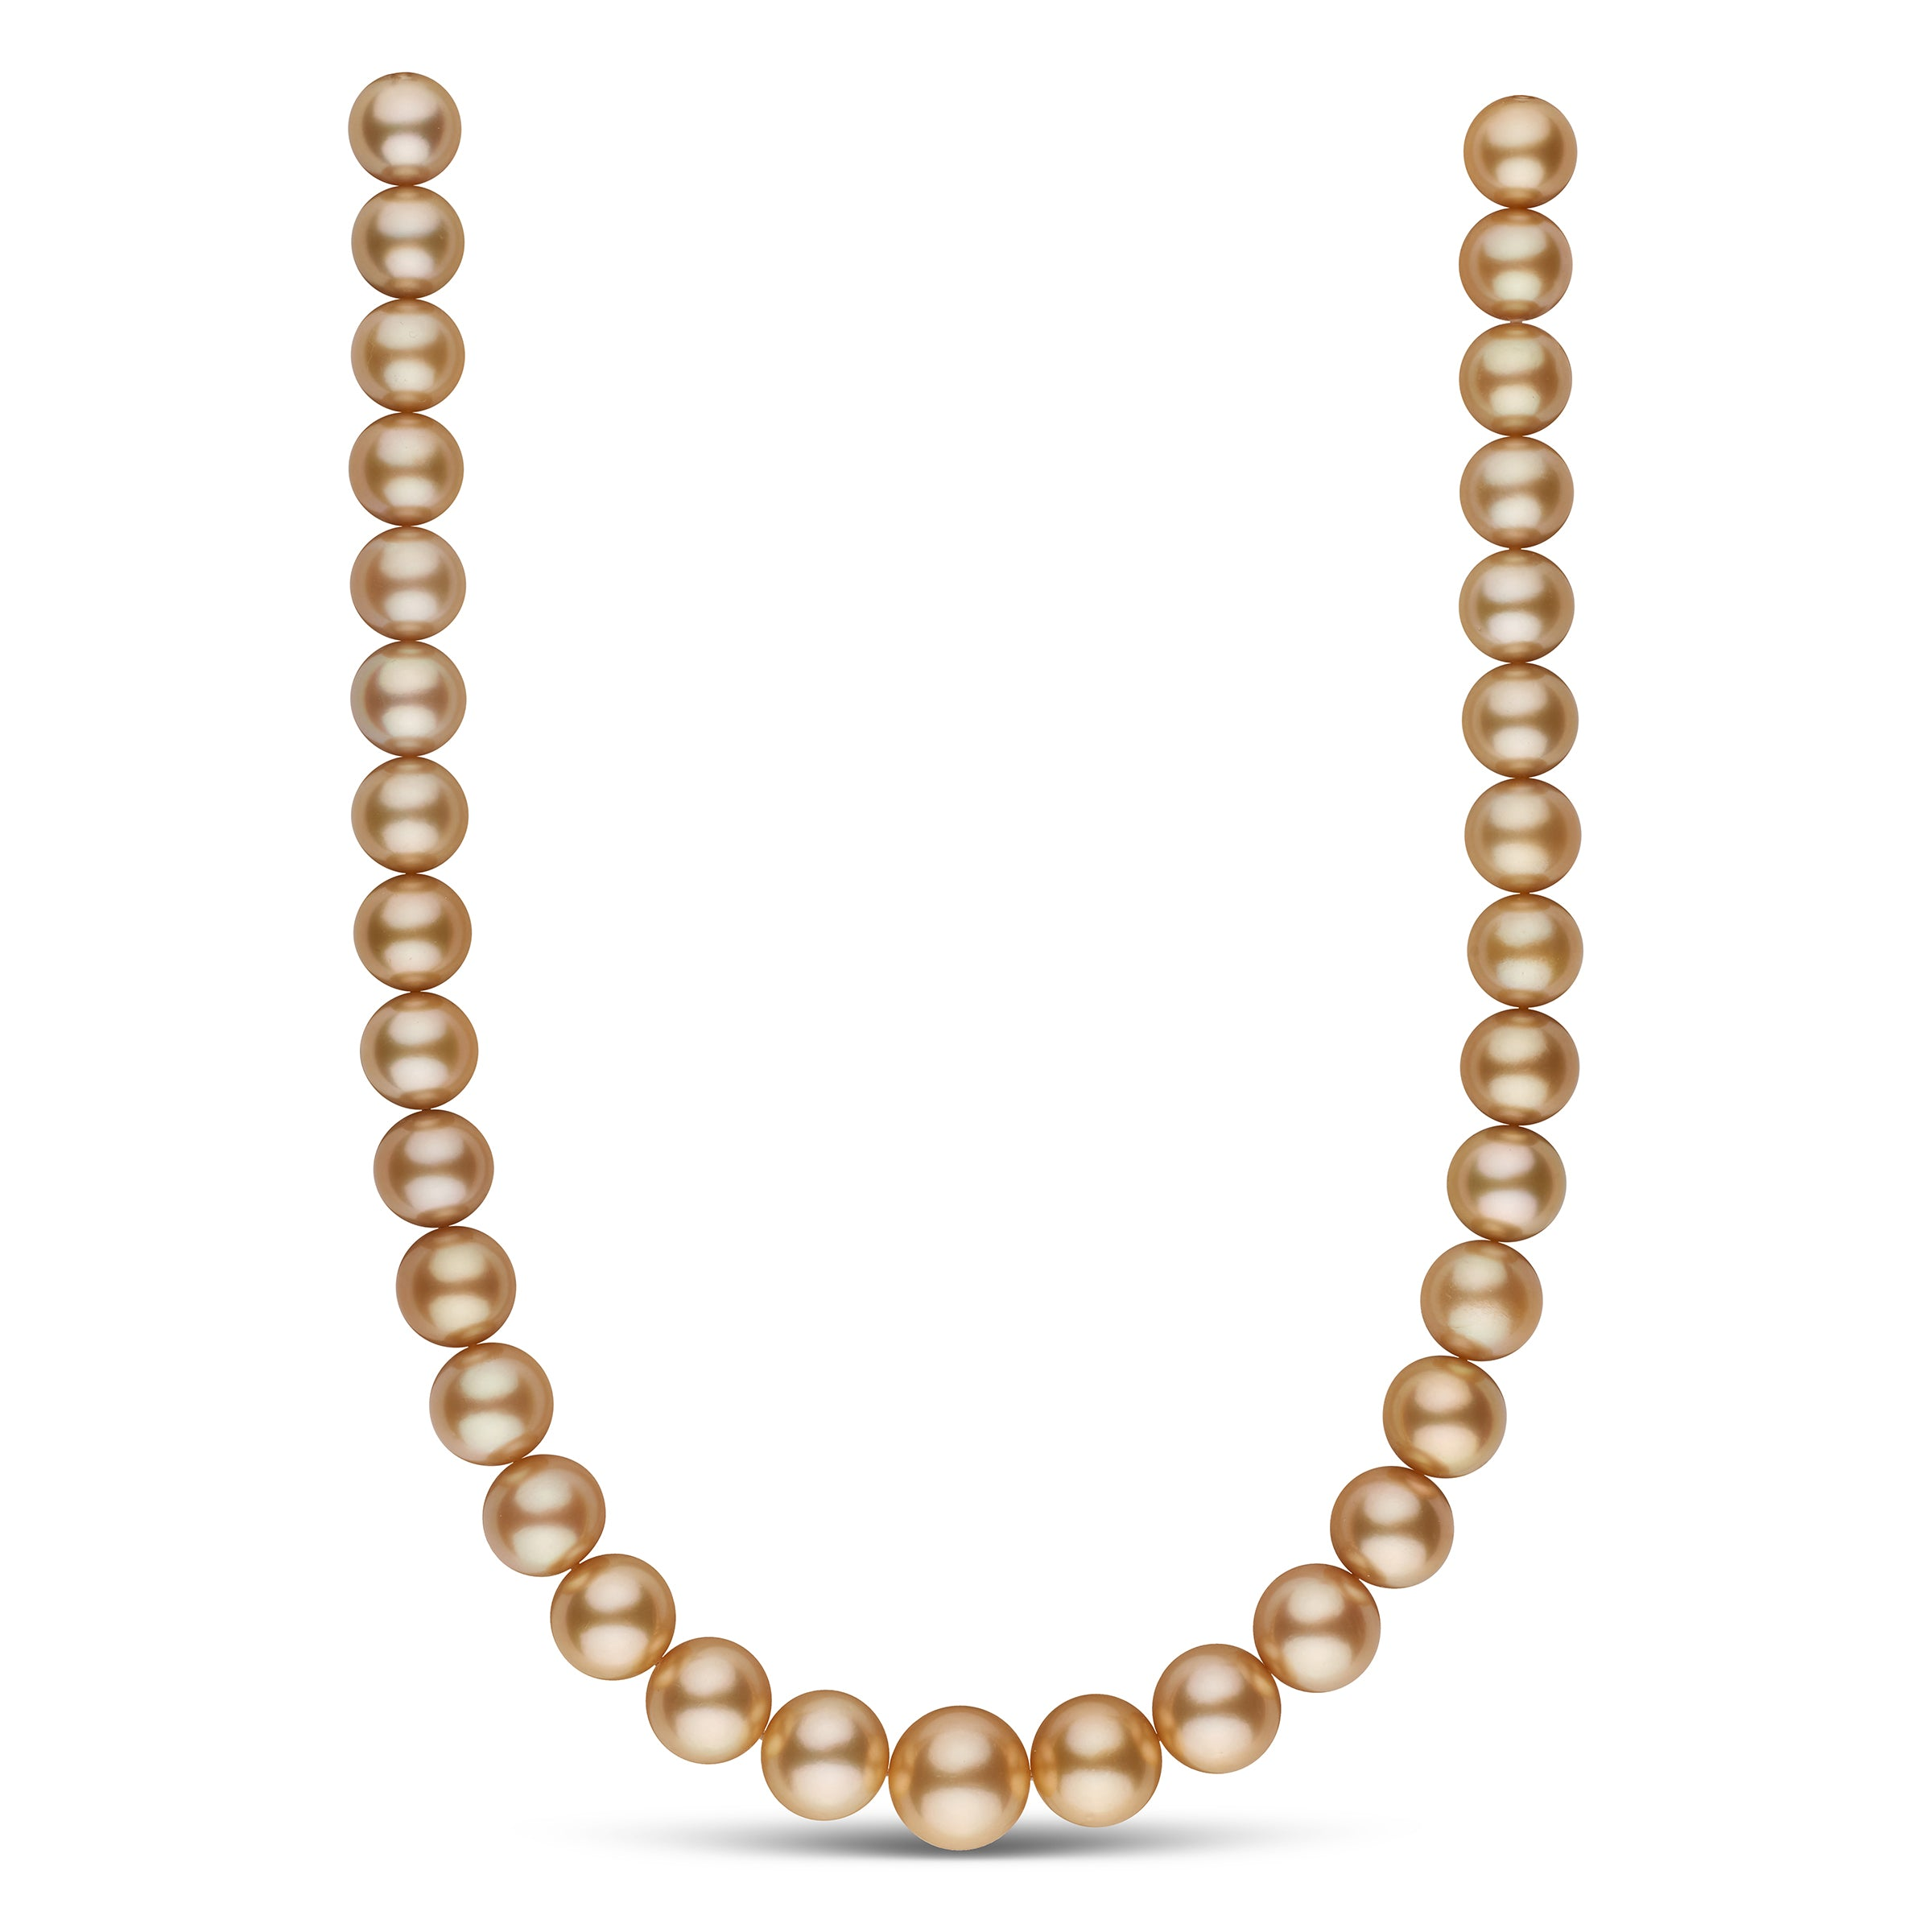 The Audrey Hepburn Golden South Sea Pearl Necklace